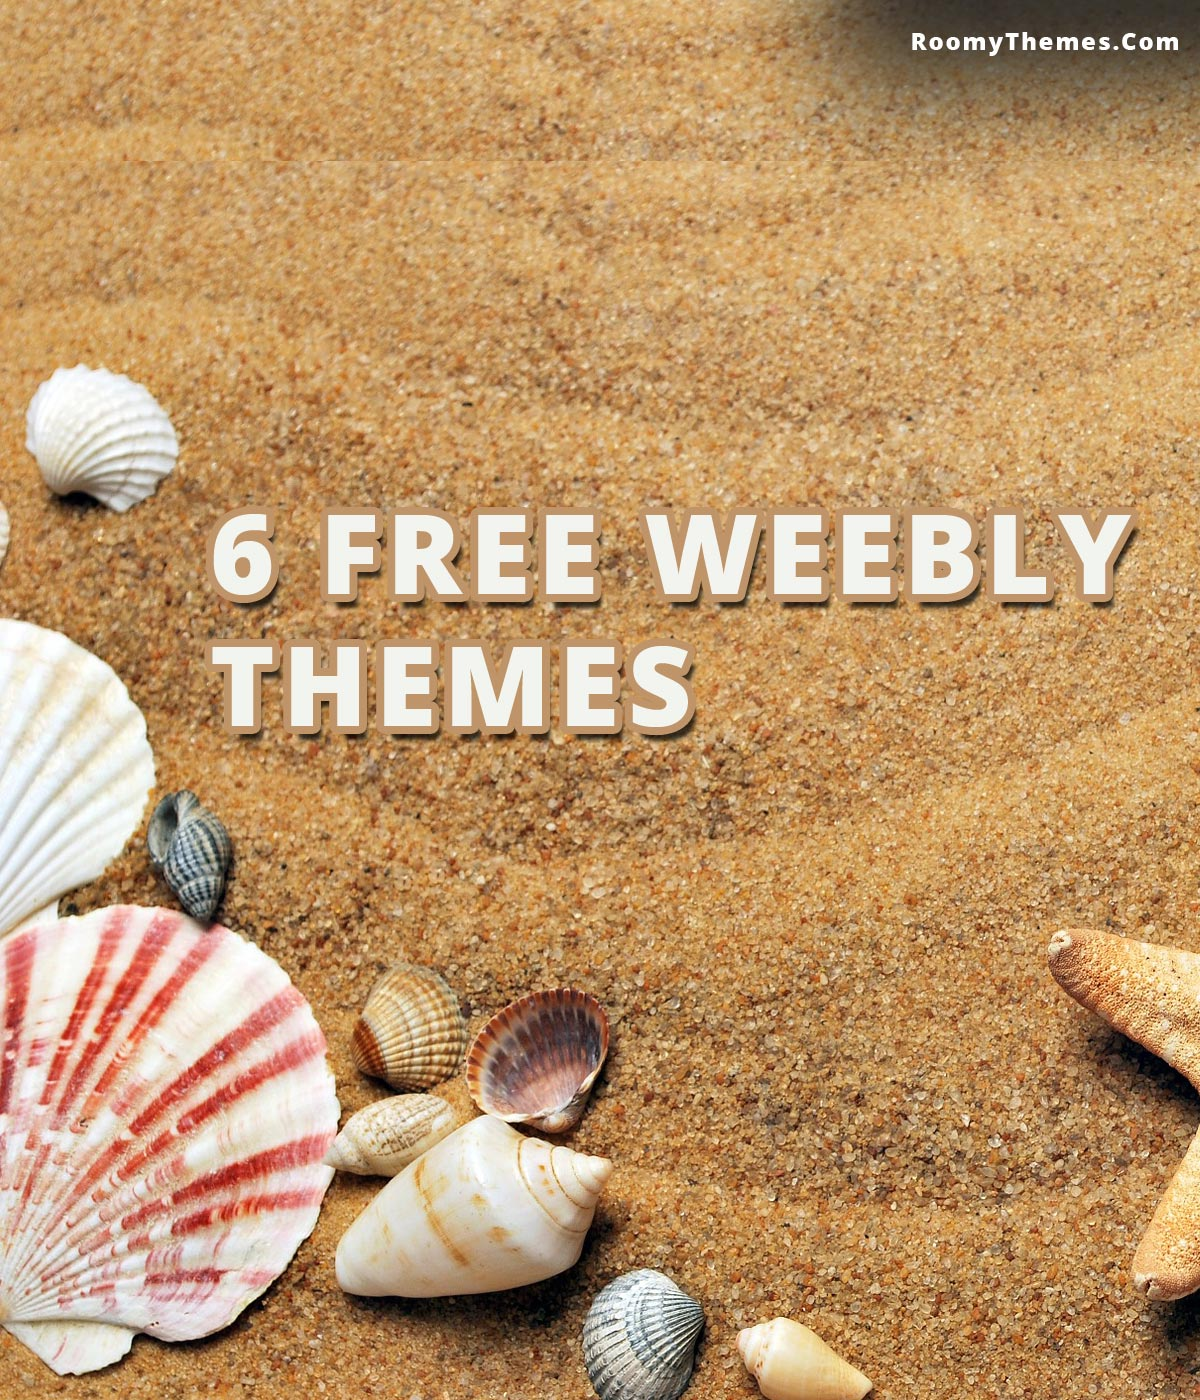 6 free weebly templates to download roomy themes